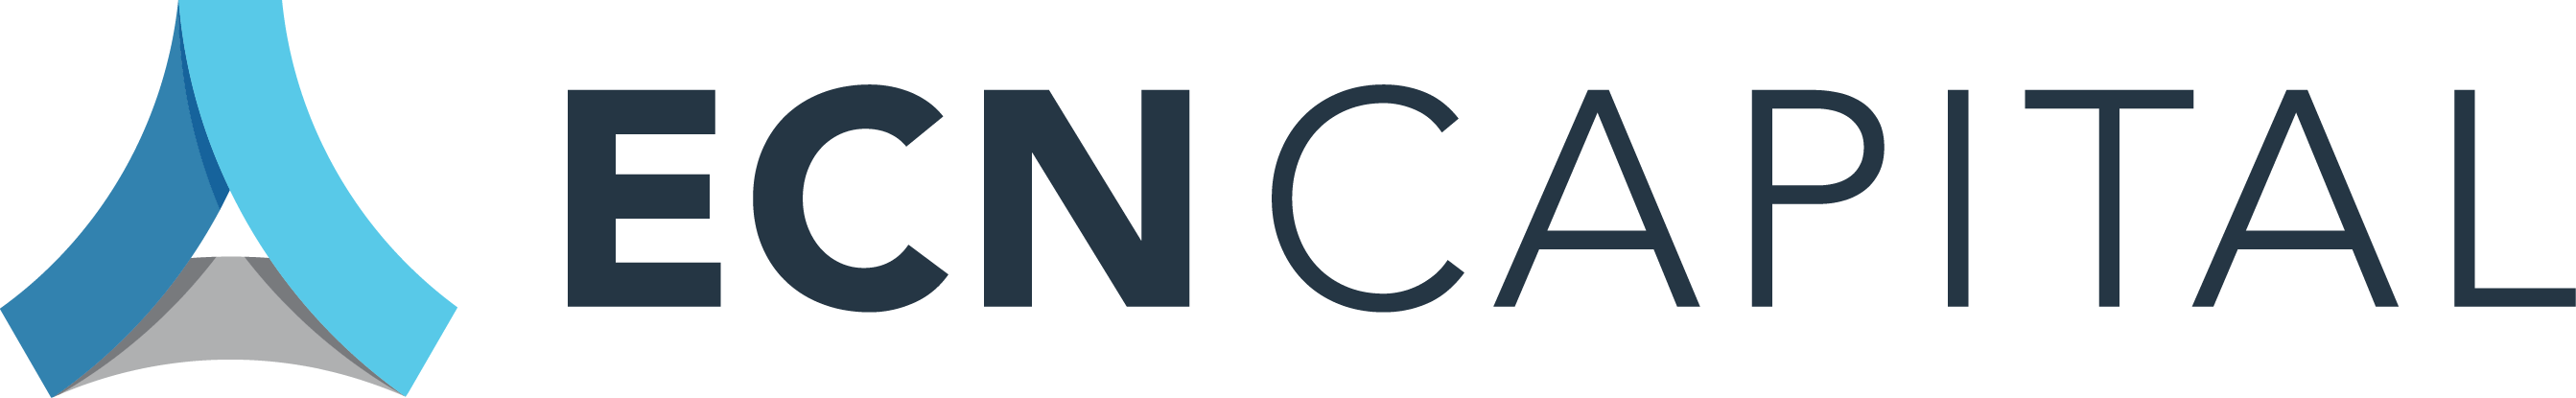 ECN Capital Reports US$0.08 in Adjusted Earnings per Common Share in Q4-2019 and US$0